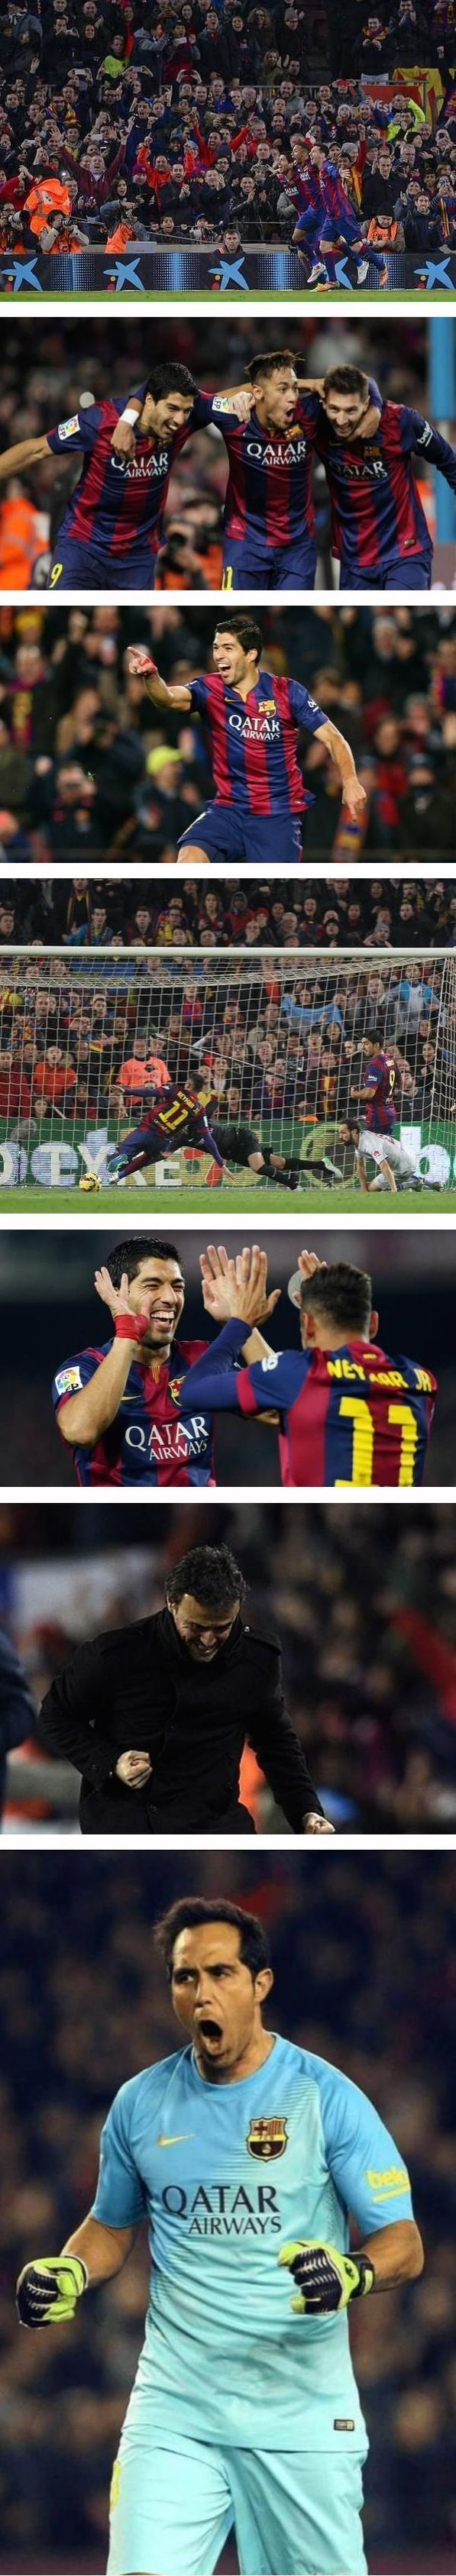 FC Barcelona 3 -  Atletico Madrid 1,   La Liga week 18, 11 January 2015  Barca Goals: Neymar, Suarez, Messi